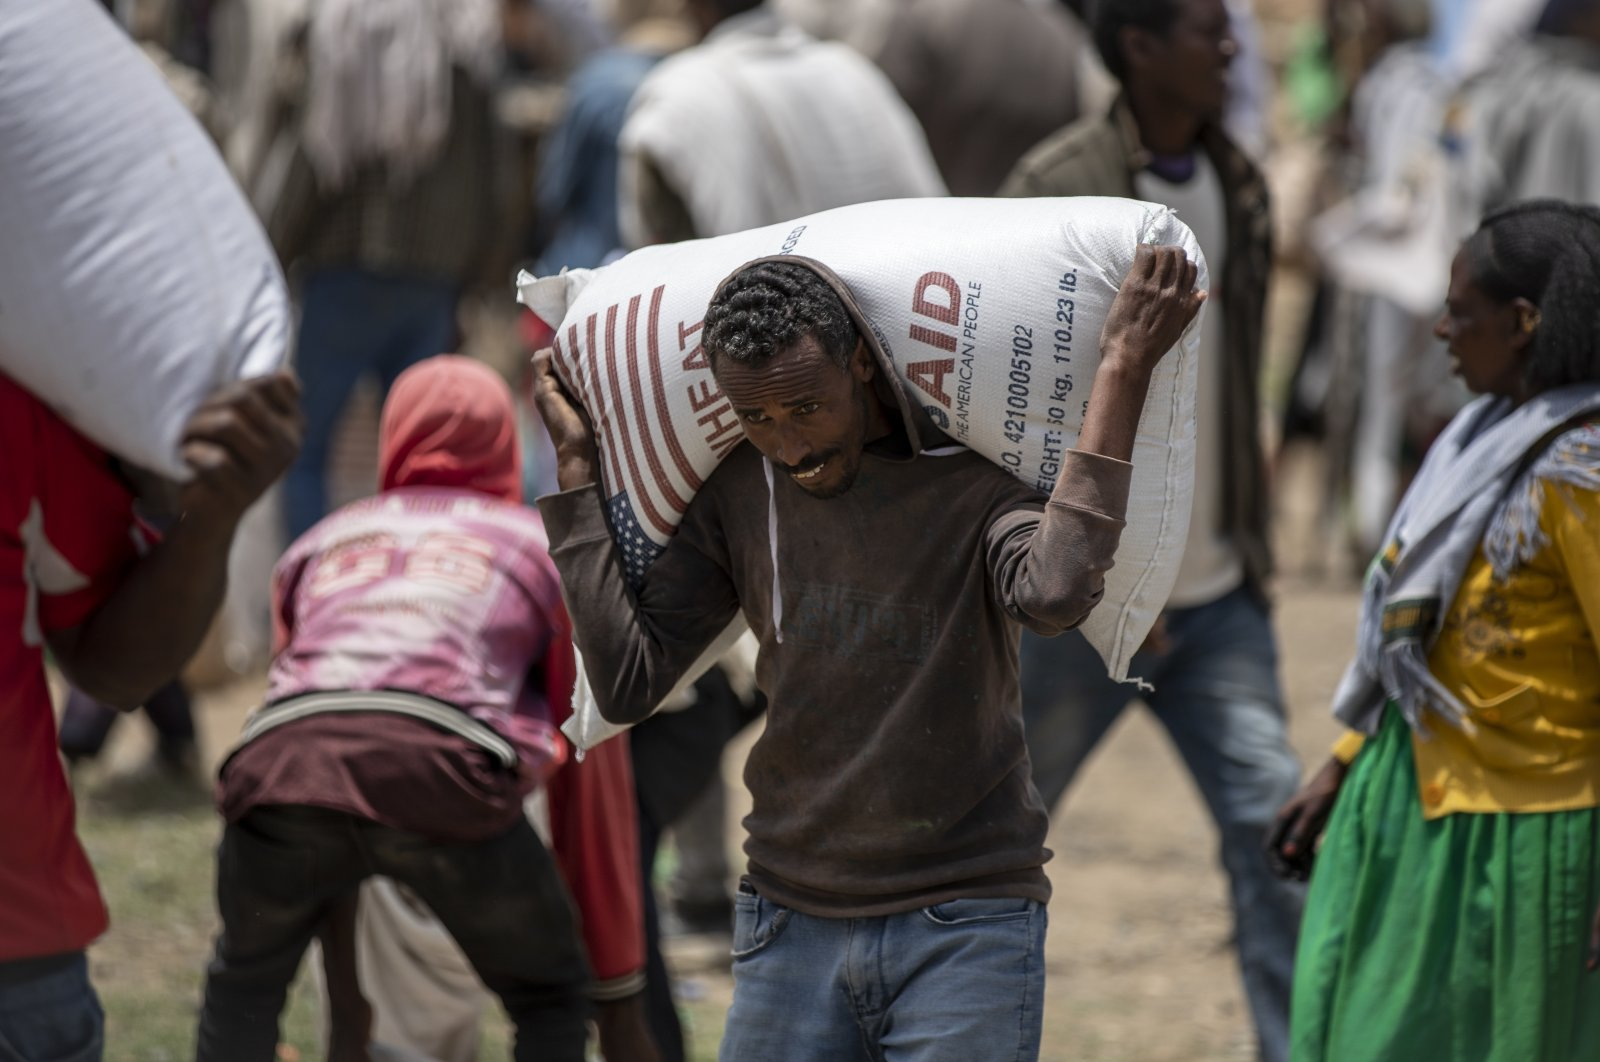 An Ethiopian man carries a sack of wheat on his shoulders to be distributed by the Relief Society of Tigray in the town of Agula, Tigray region, northern Ethiopia, May 8, 2021. (AP Photo)